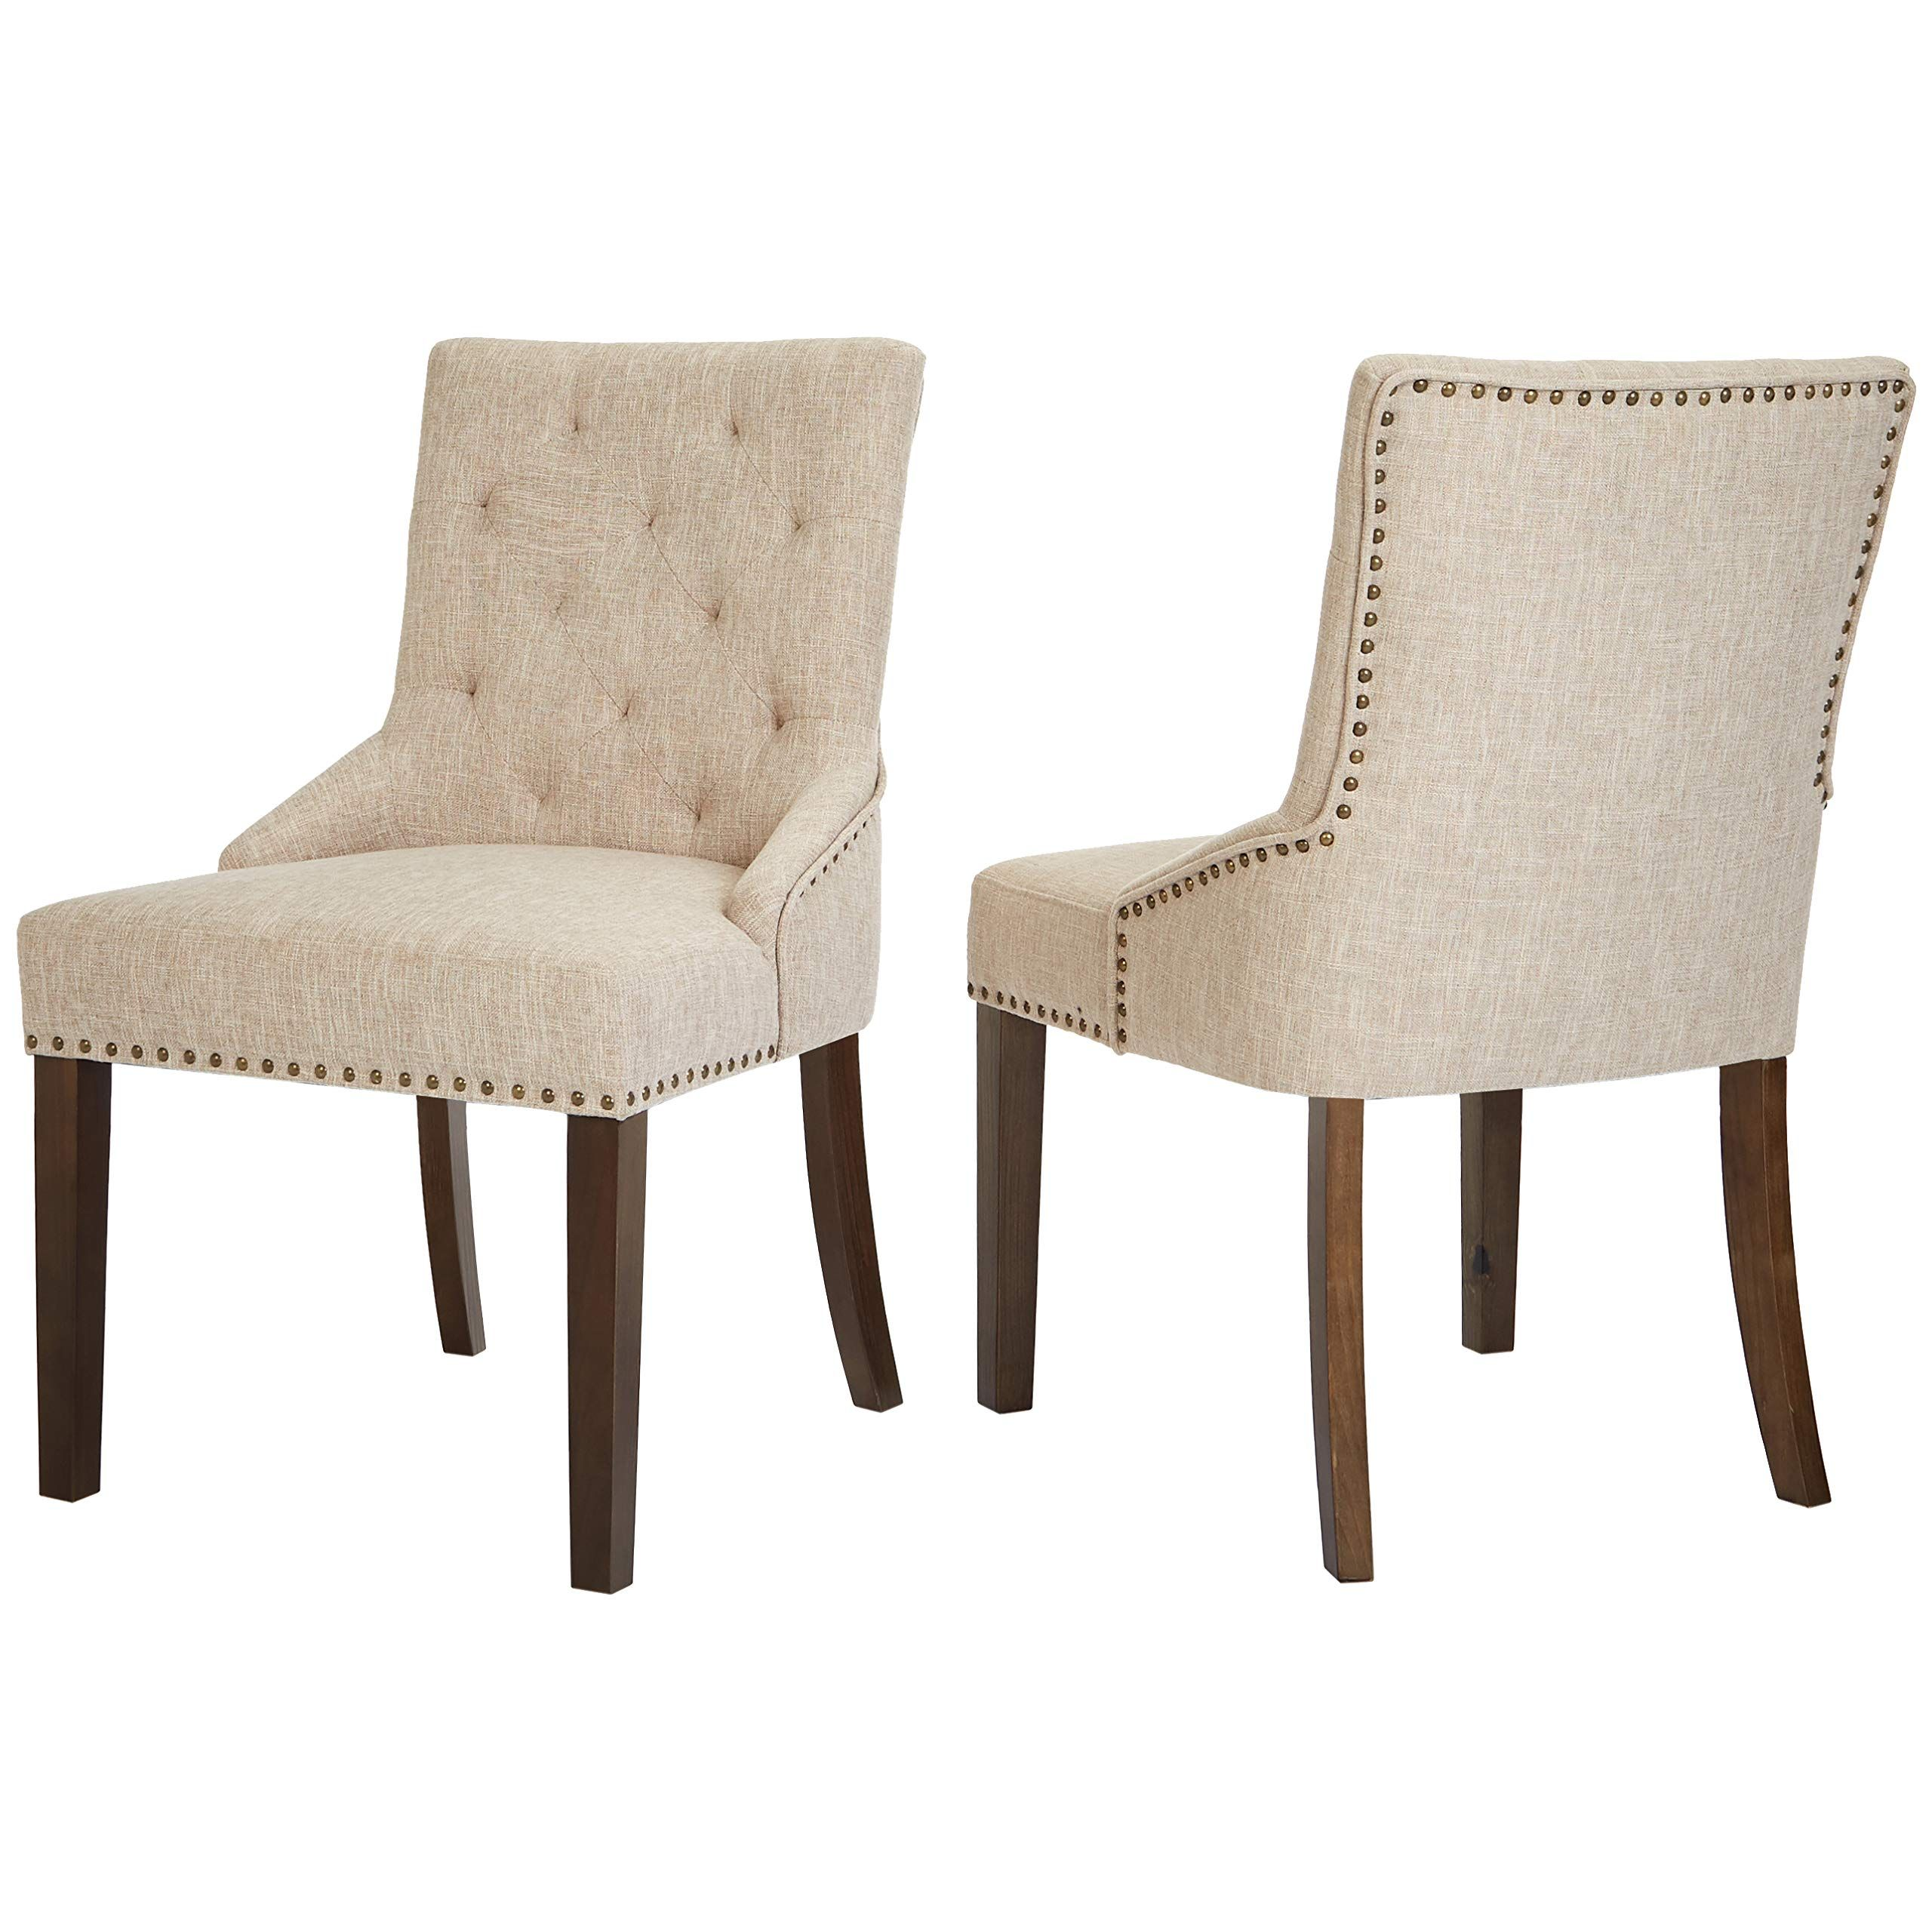 Red Hook Martil Upholstered Dining Chair With Nailhead Trim Biscuit